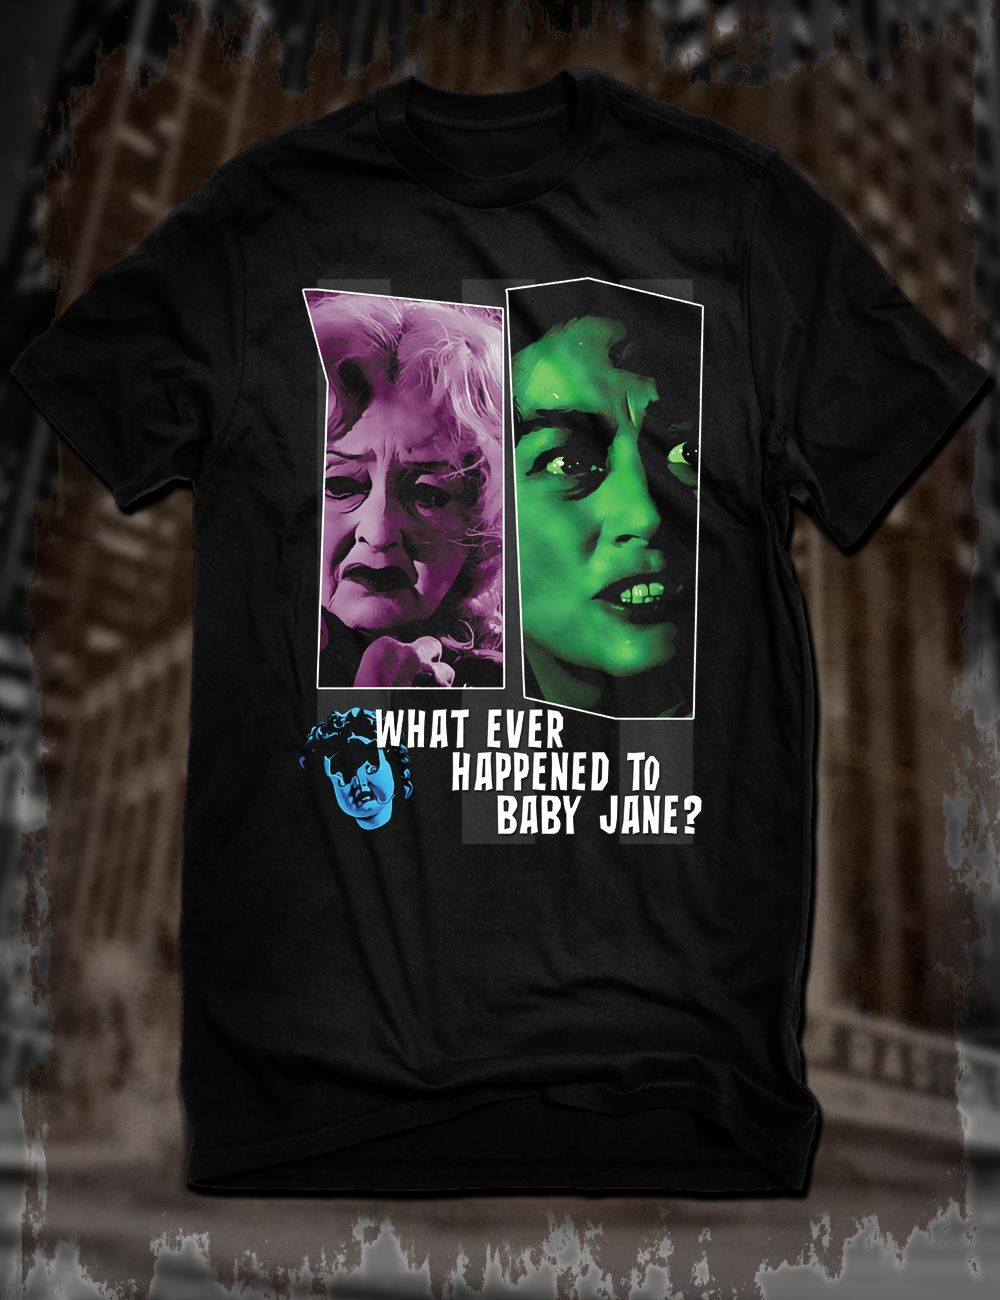 New Black What Ever Happened To Baby Jane T-Shirt Bette Davis Joan Crawford Tee ...